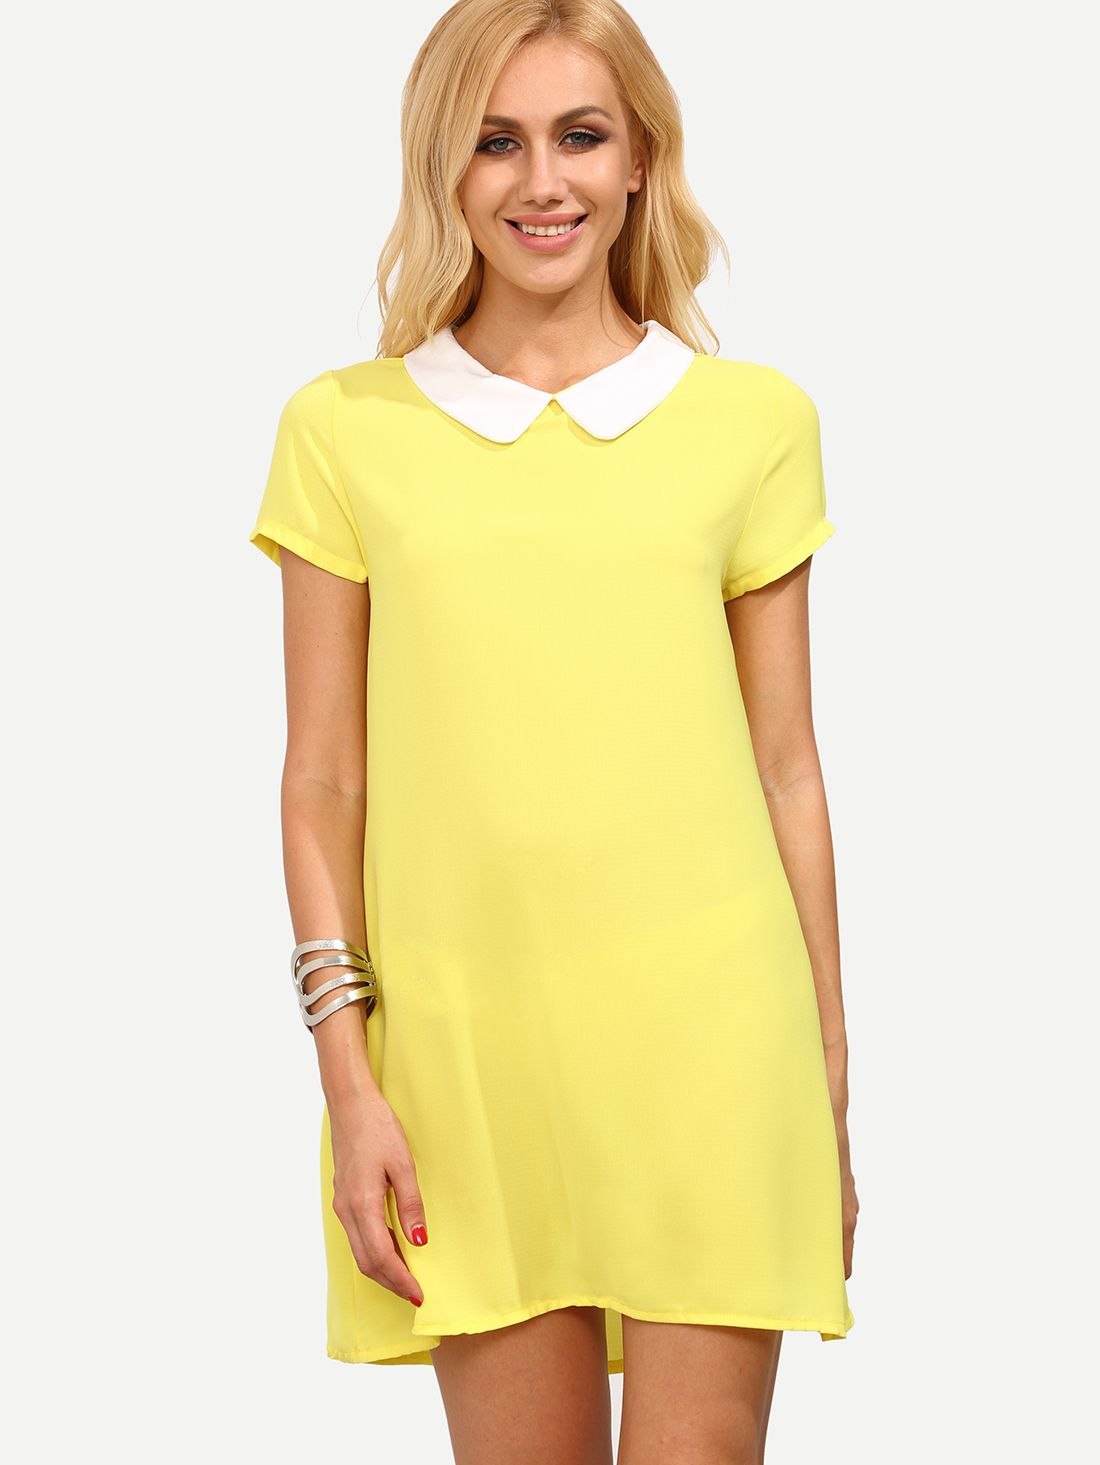 Shop Yellow Peter Pan Collar Short Sleeve Shift Dress Online Shein Minimal Carter Pleated Shirt White Putih S Offers More To Fit Your Fashionable